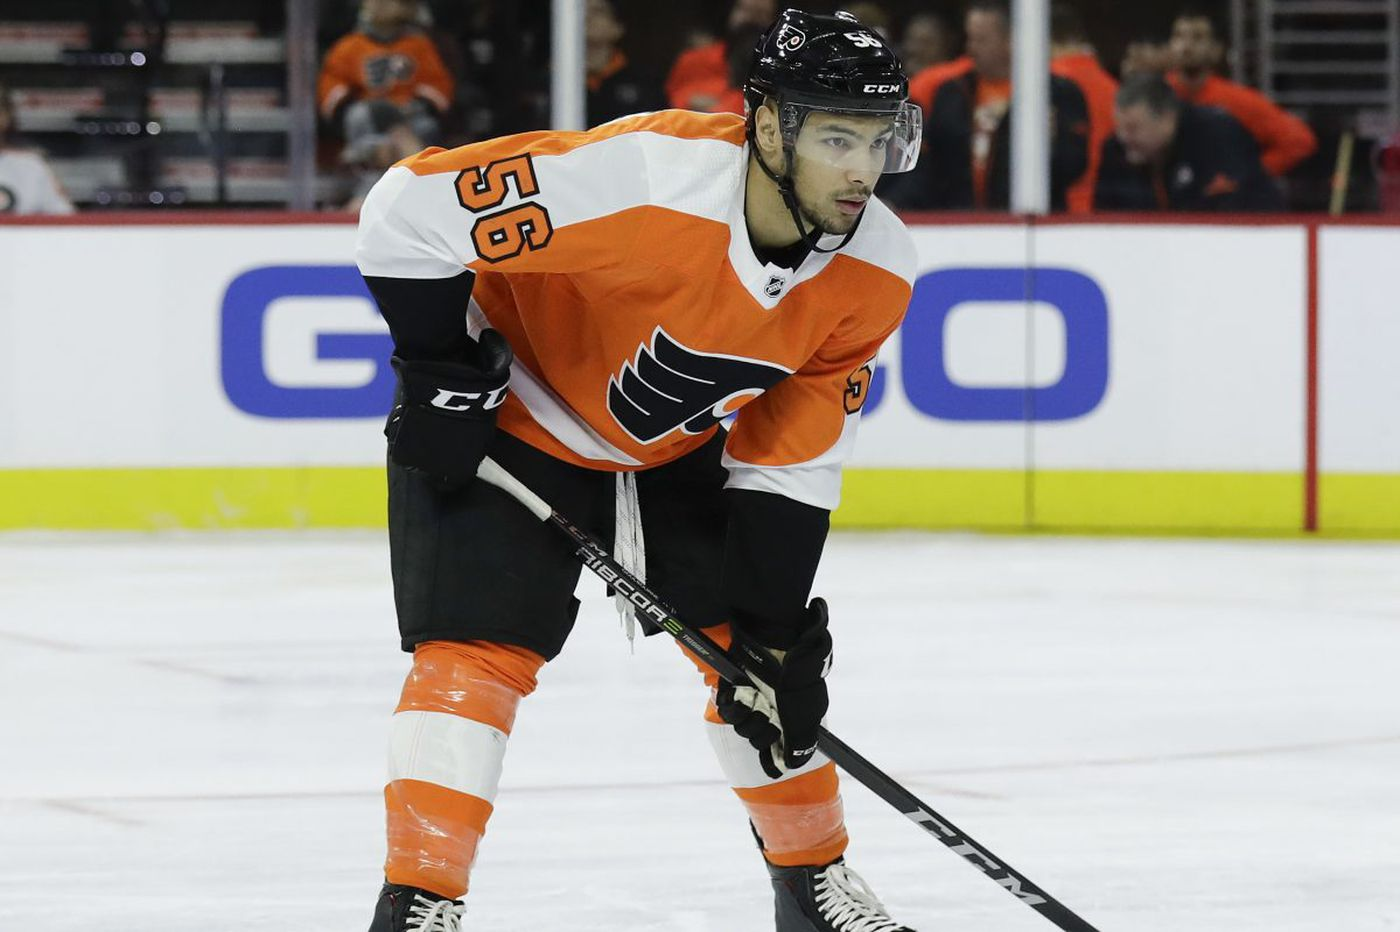 Flyers rookie Tyrell Goulbourne returned to Phantoms after his hit debut